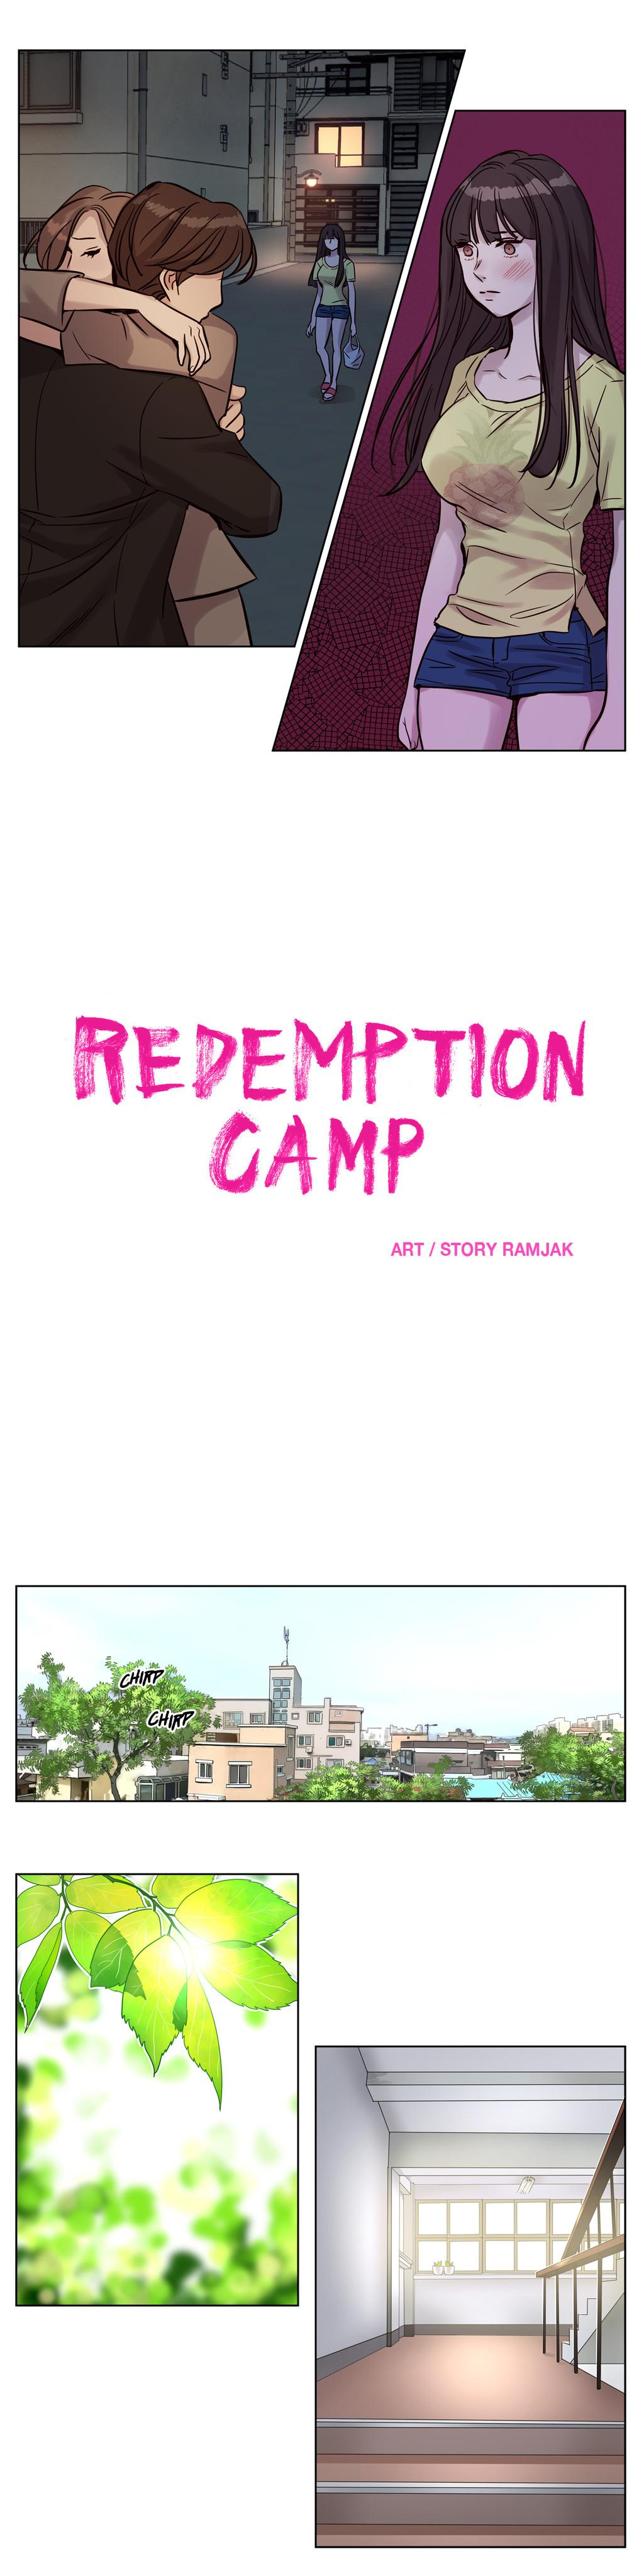 Atonement Camp Ch.0-53 181